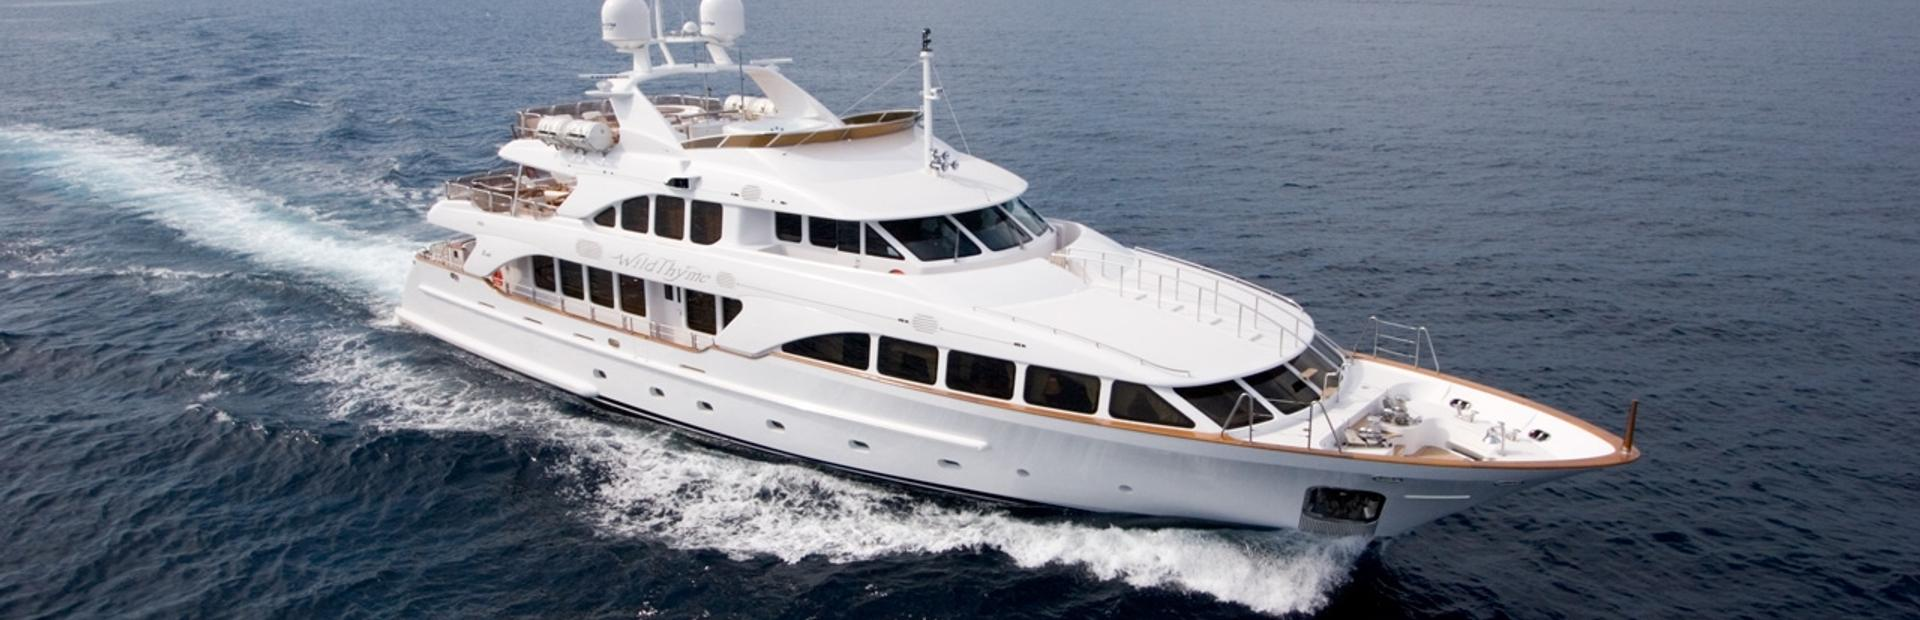 Classic 120' Yacht Charter